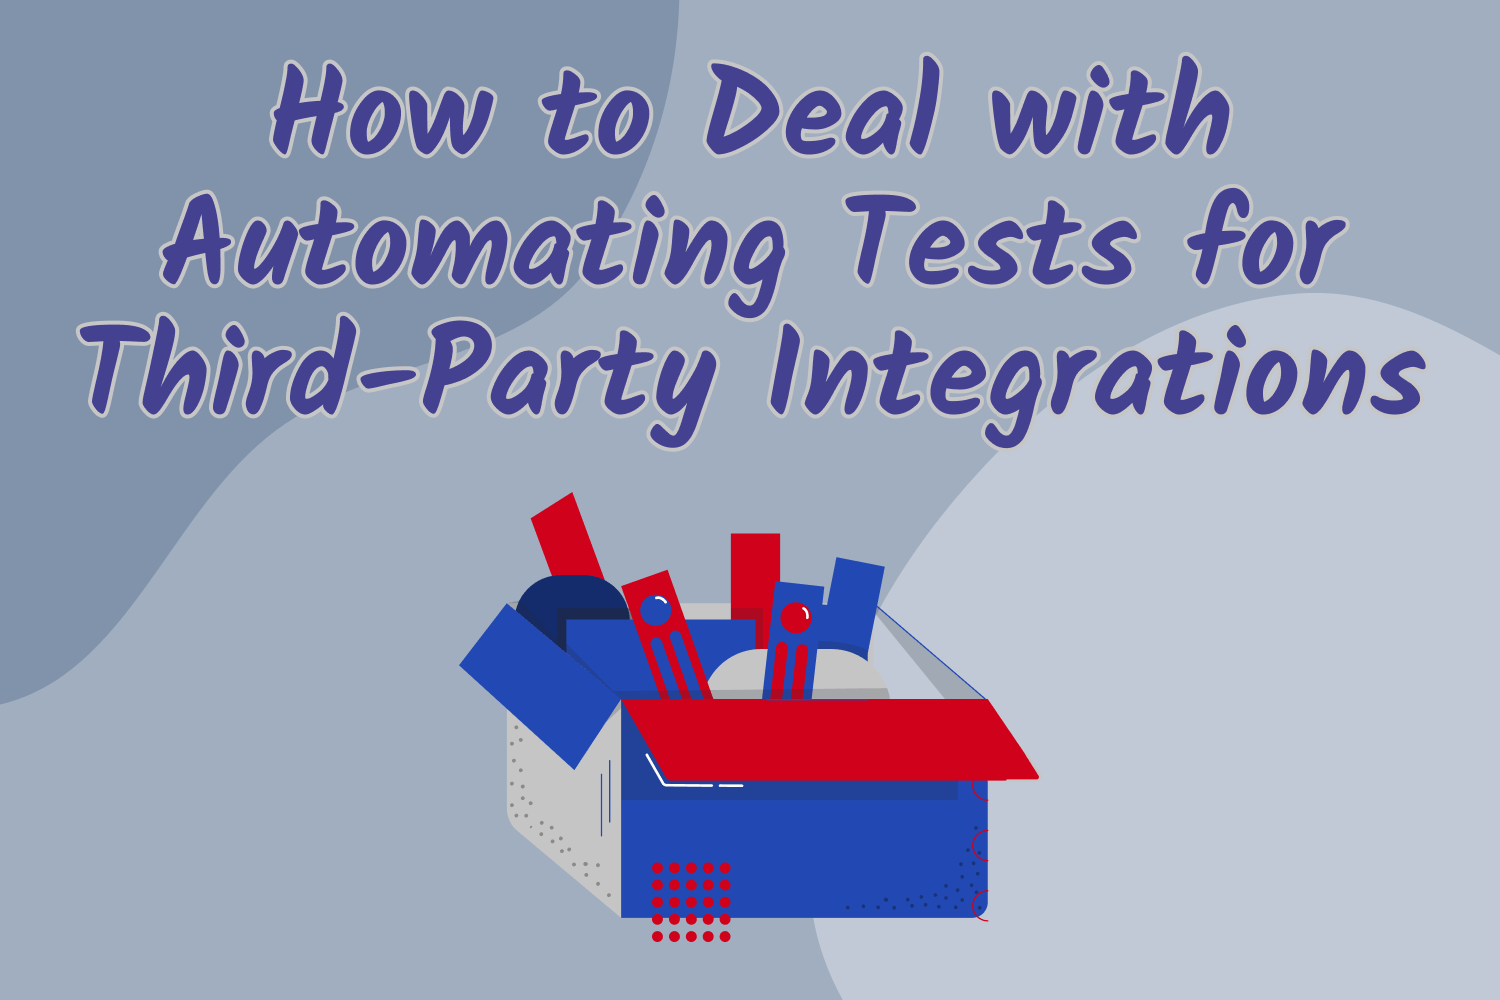 How to Deal with Automating Tests for Third-Party Integrations